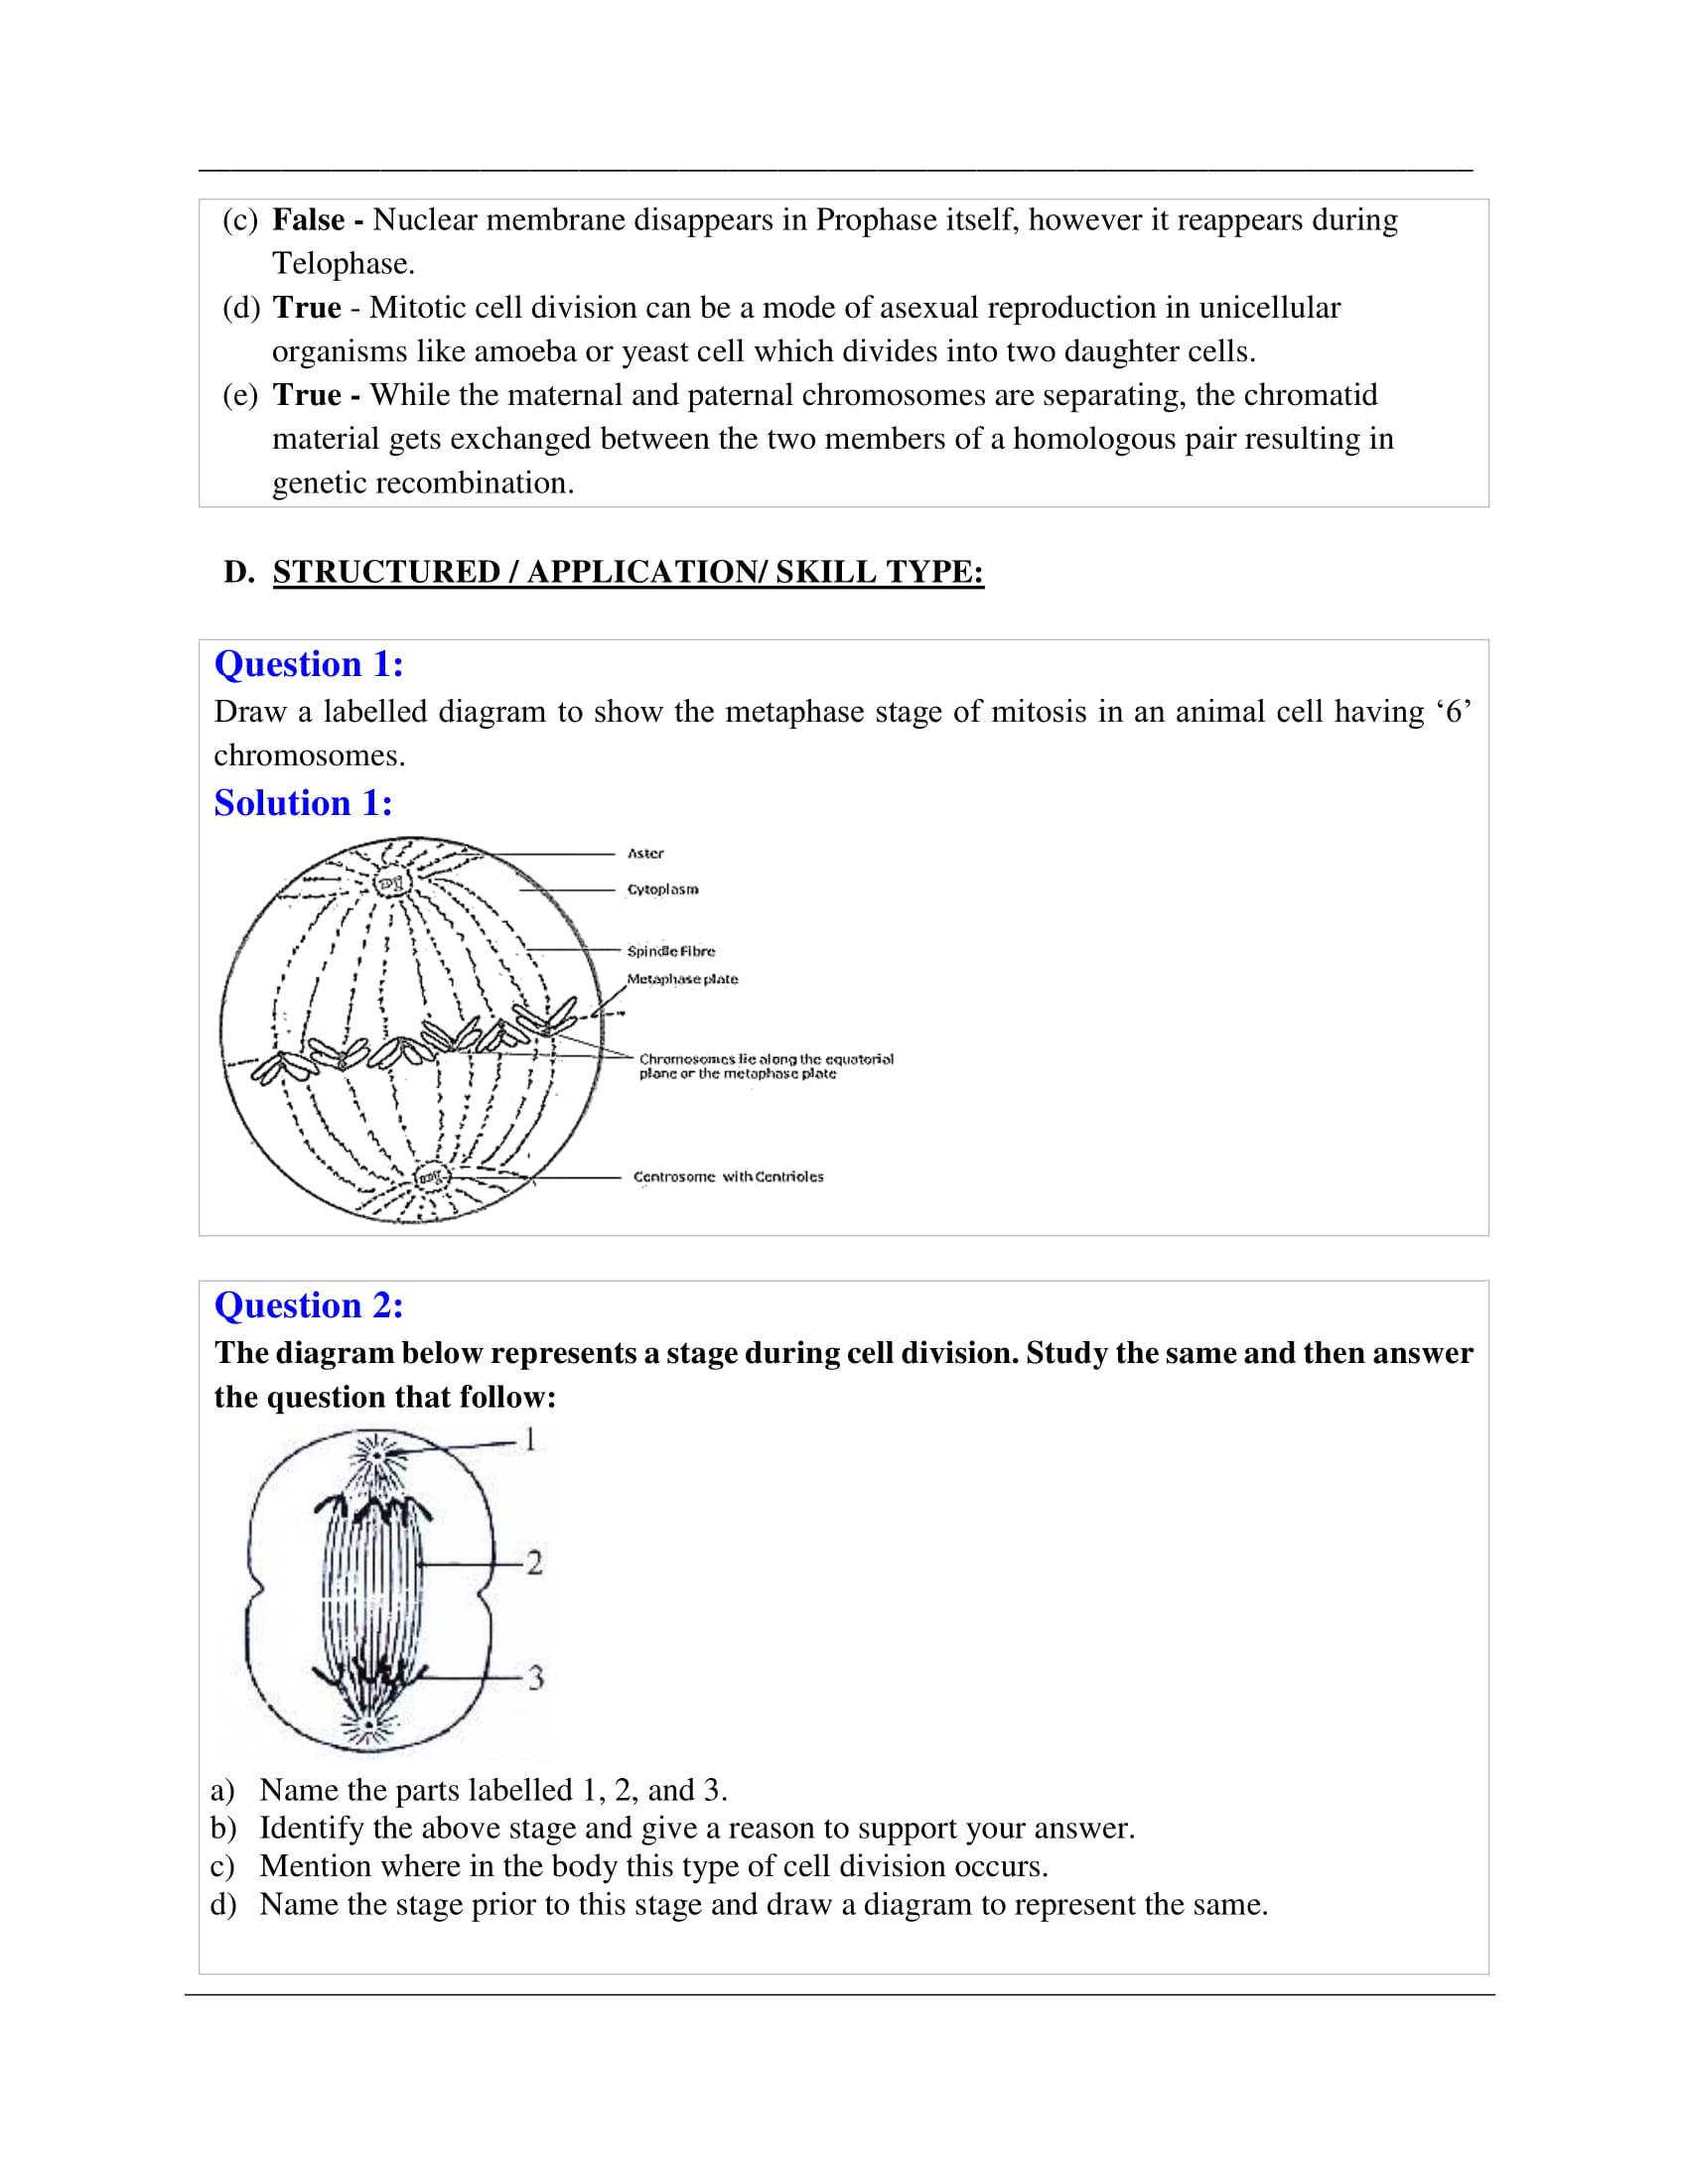 icse-selina-biology-solutions-class-10-chapter-1-cell-cycle-cell-division-and-structure-of-chromosomes-08